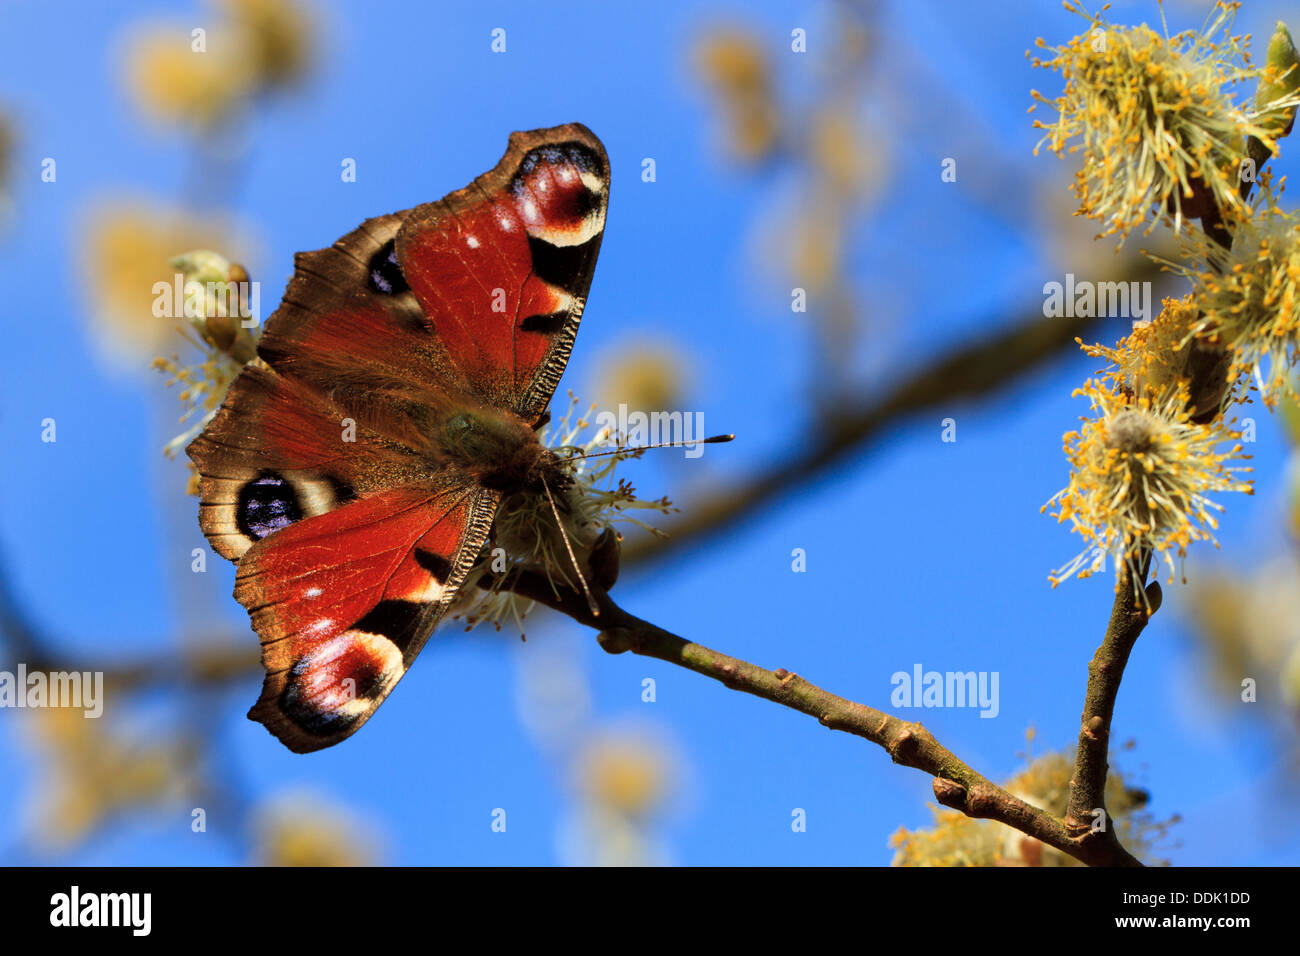 Peacock butterfly (Aglais io) feeding on Sallow flowers in Spring. Powys, Wales. April. - Stock Image